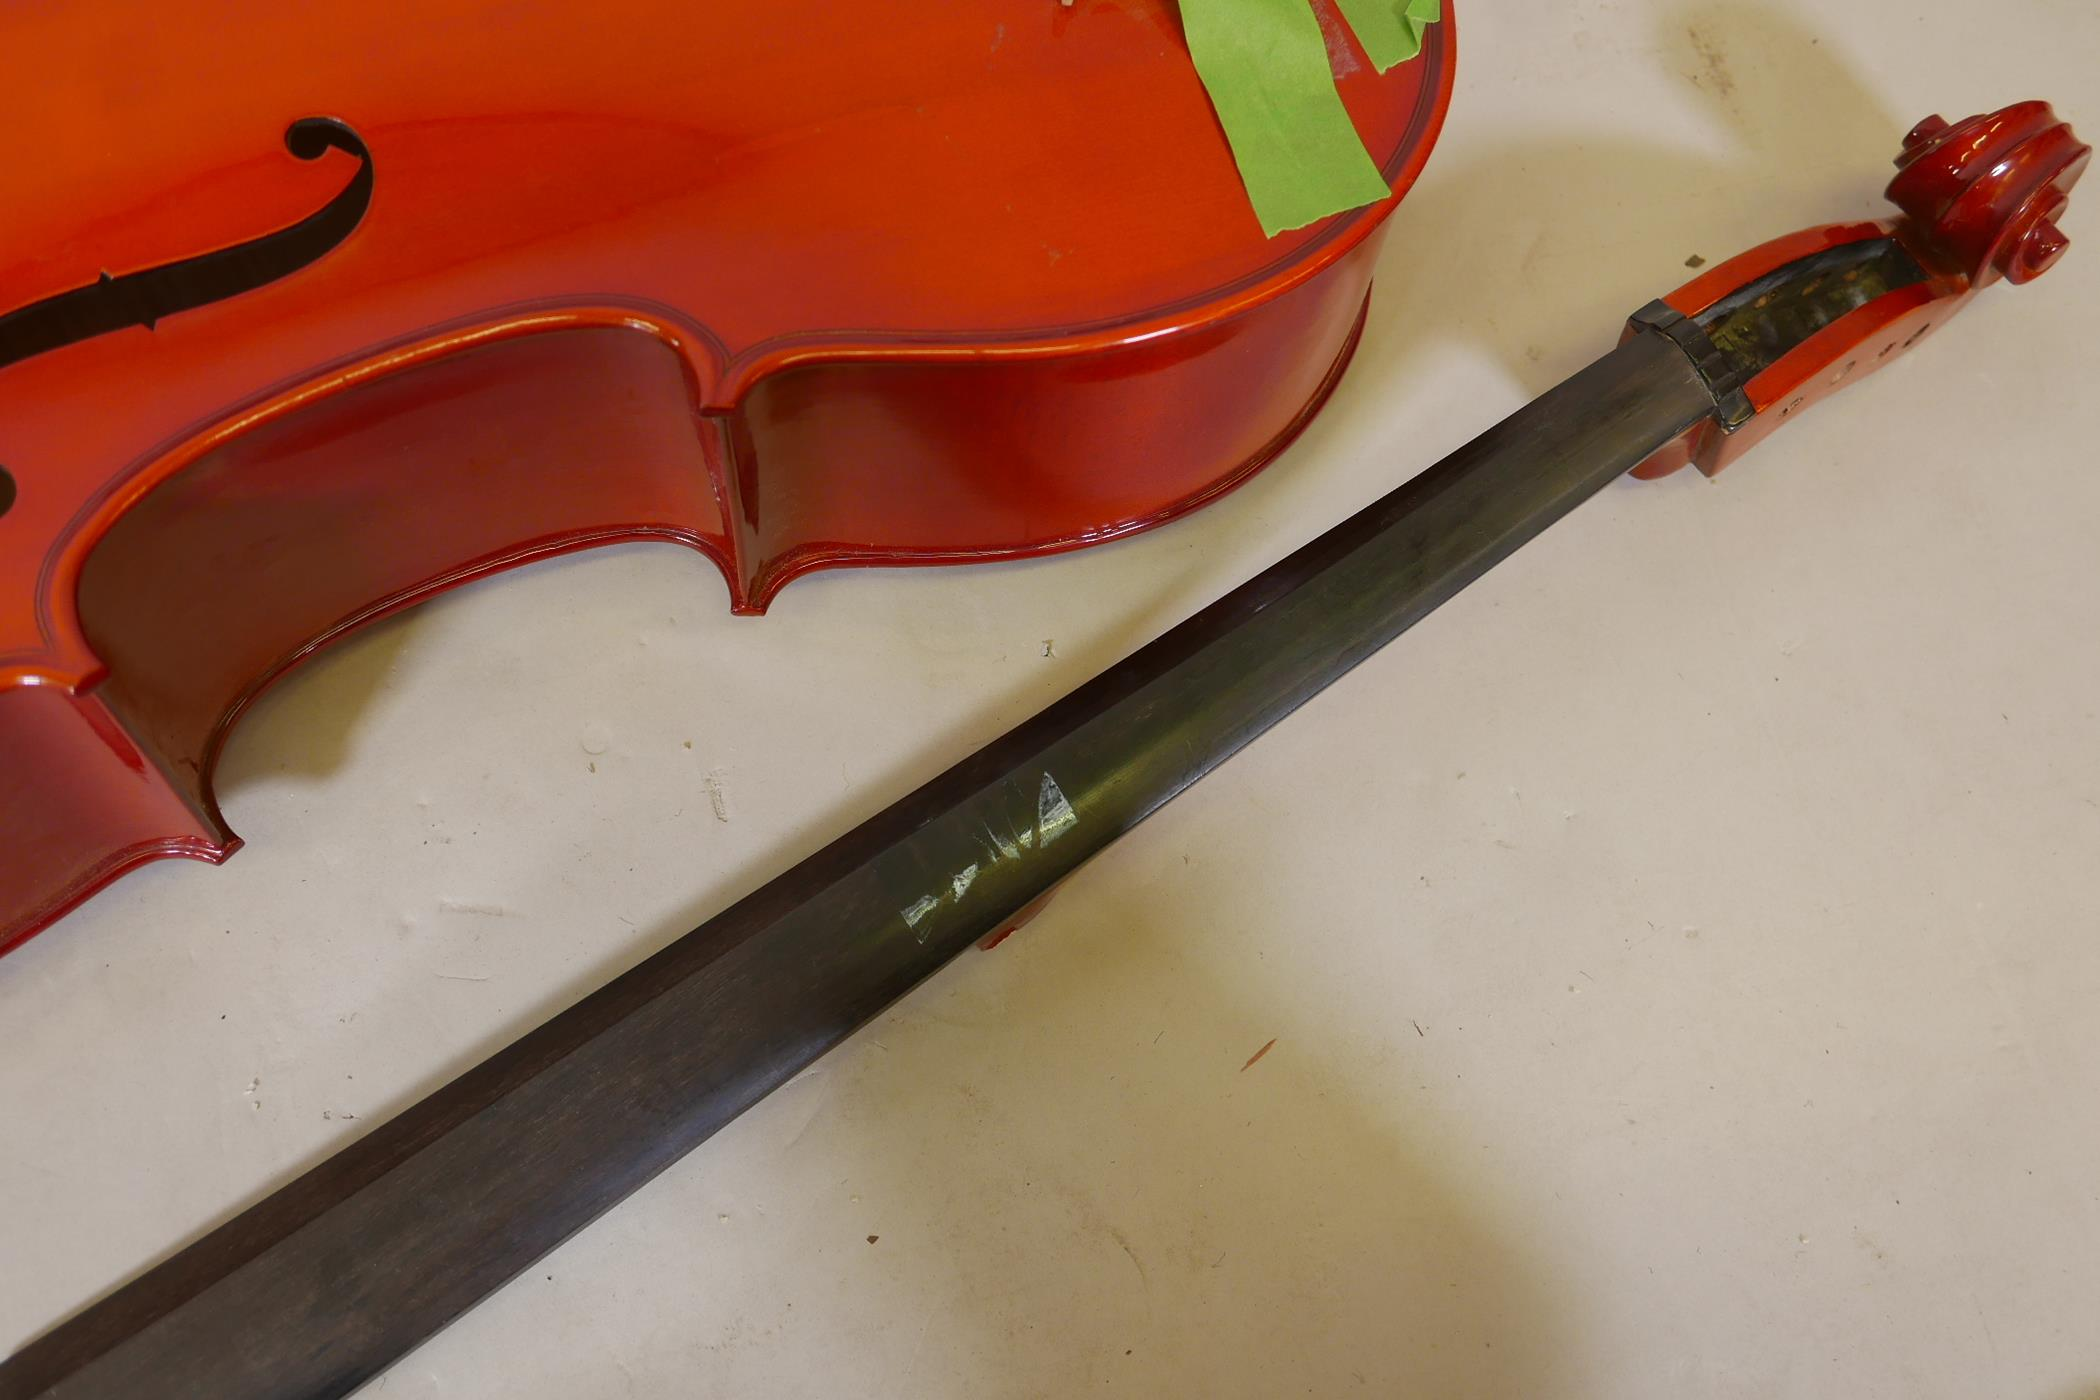 A cello for restoration, no tuning pegs - Image 4 of 4